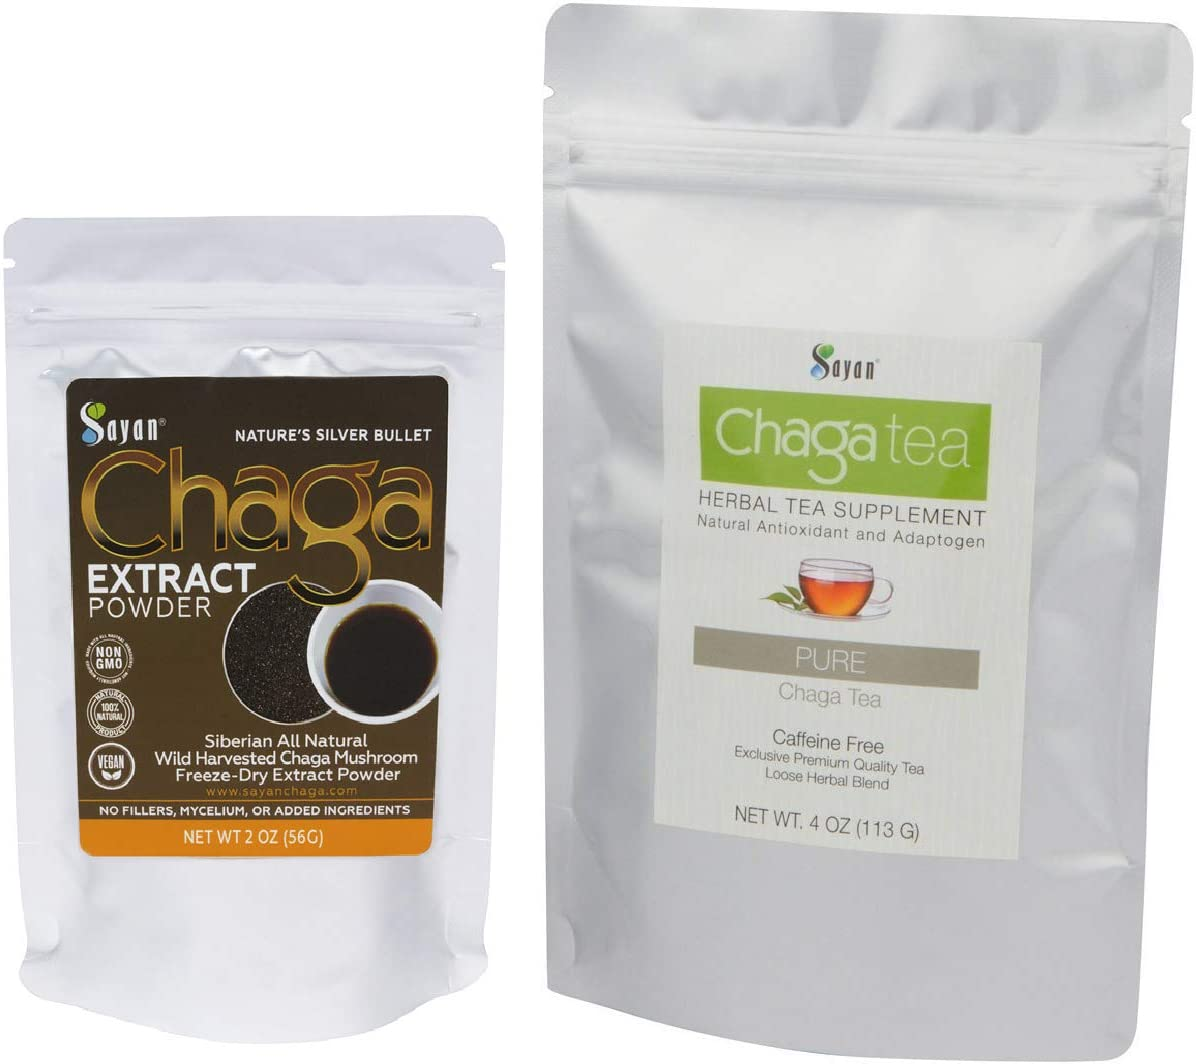 Sayan Siberian Wild Forest Chaga Mushroom 2 Oz Extract Powder and 4 Oz Loose Tea – Premium Antioxidant Booster Tea for Healthy Digestion - All Natural Immune System Support & Inflammation Reduction